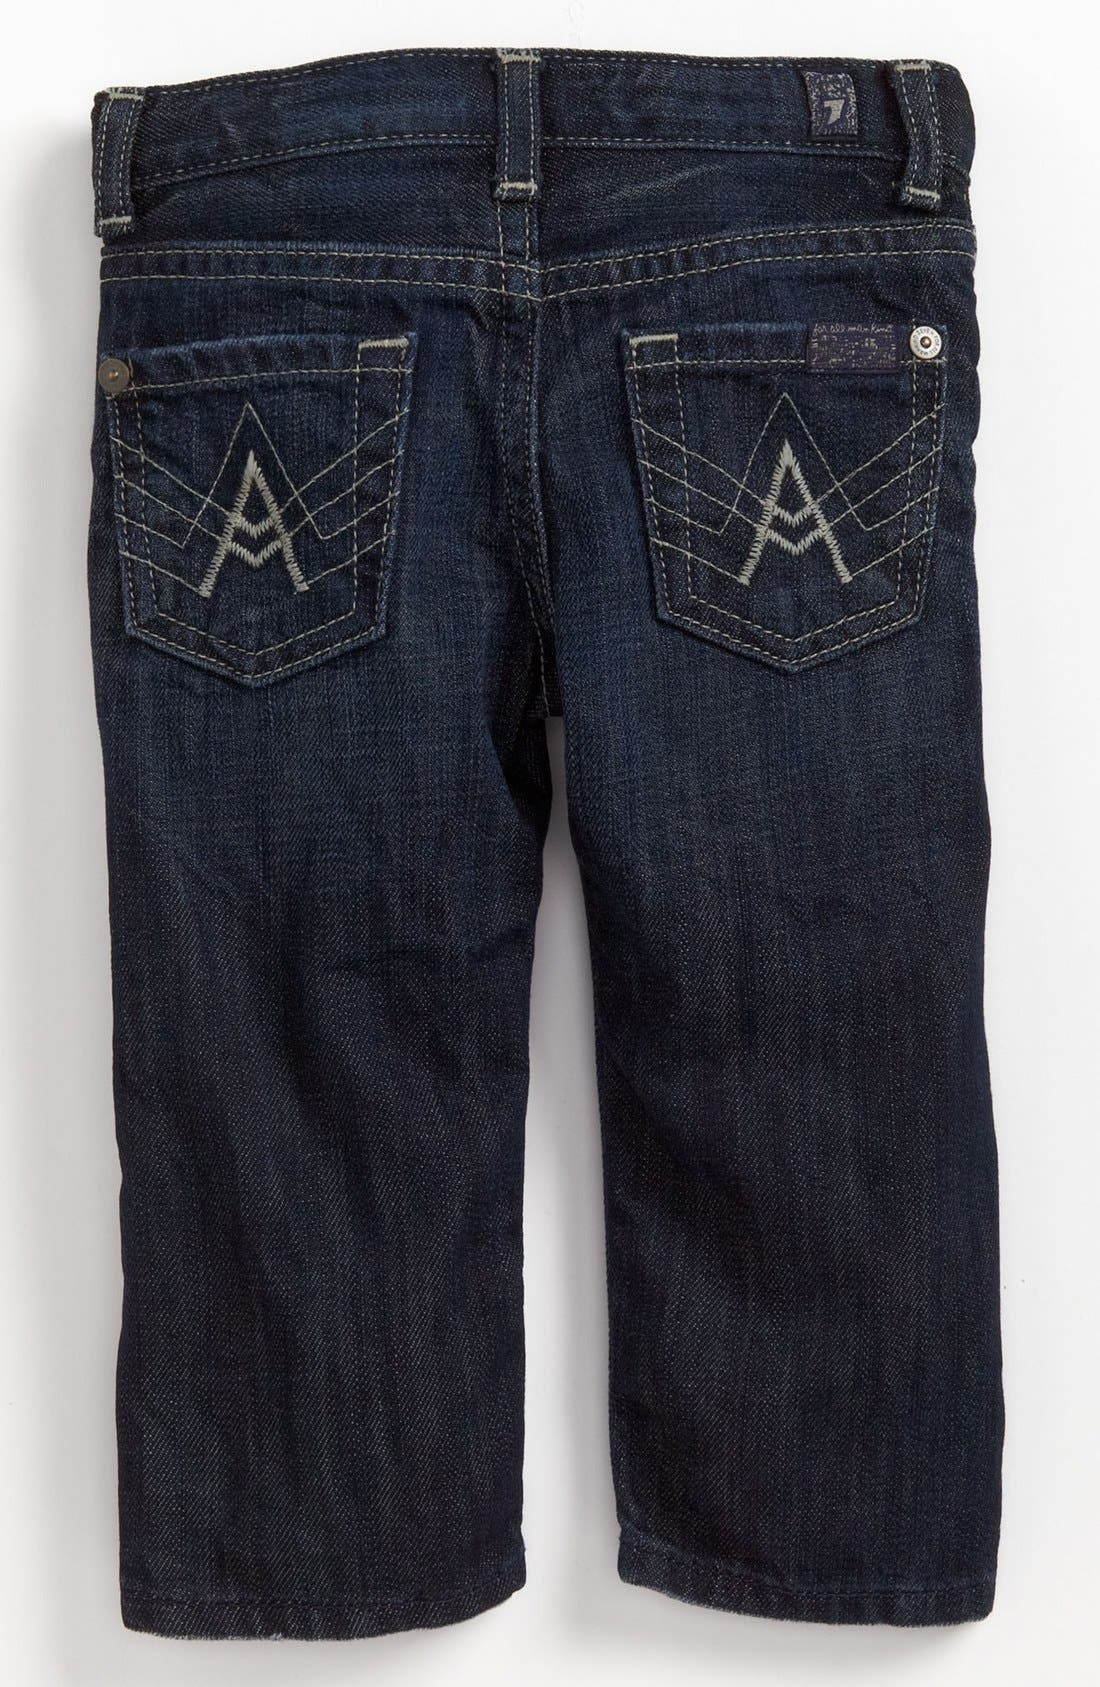 Alternate Image 1 Selected - 7 For All Mankind® 'Standard' Straight Leg Jeans (Baby Boys) (Online Only)